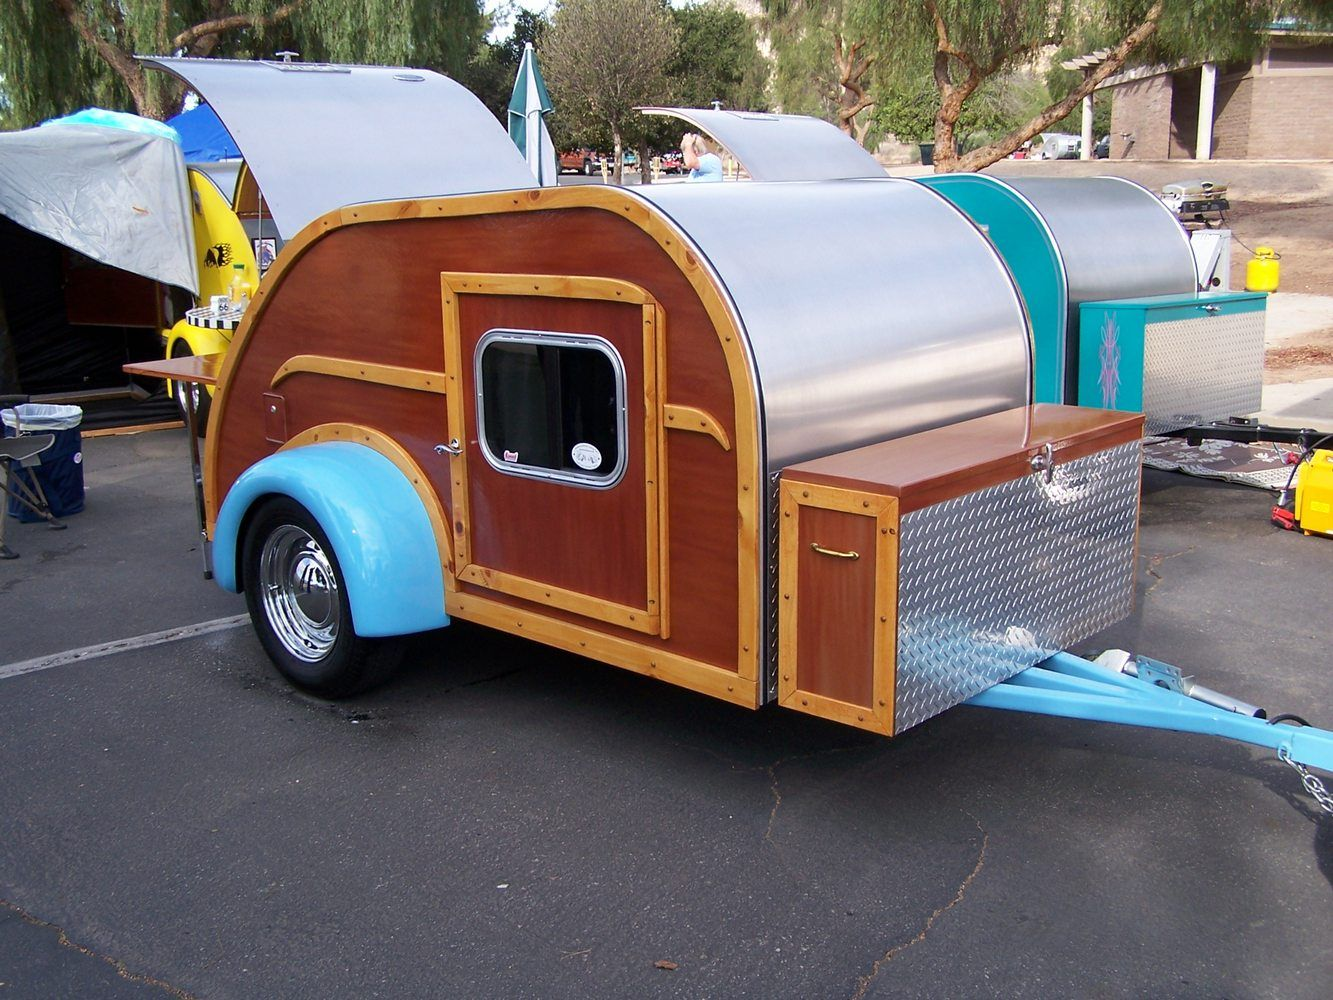 Aluminum Teardrop Trailers : Turquoise woody aluminum teardrop trailer